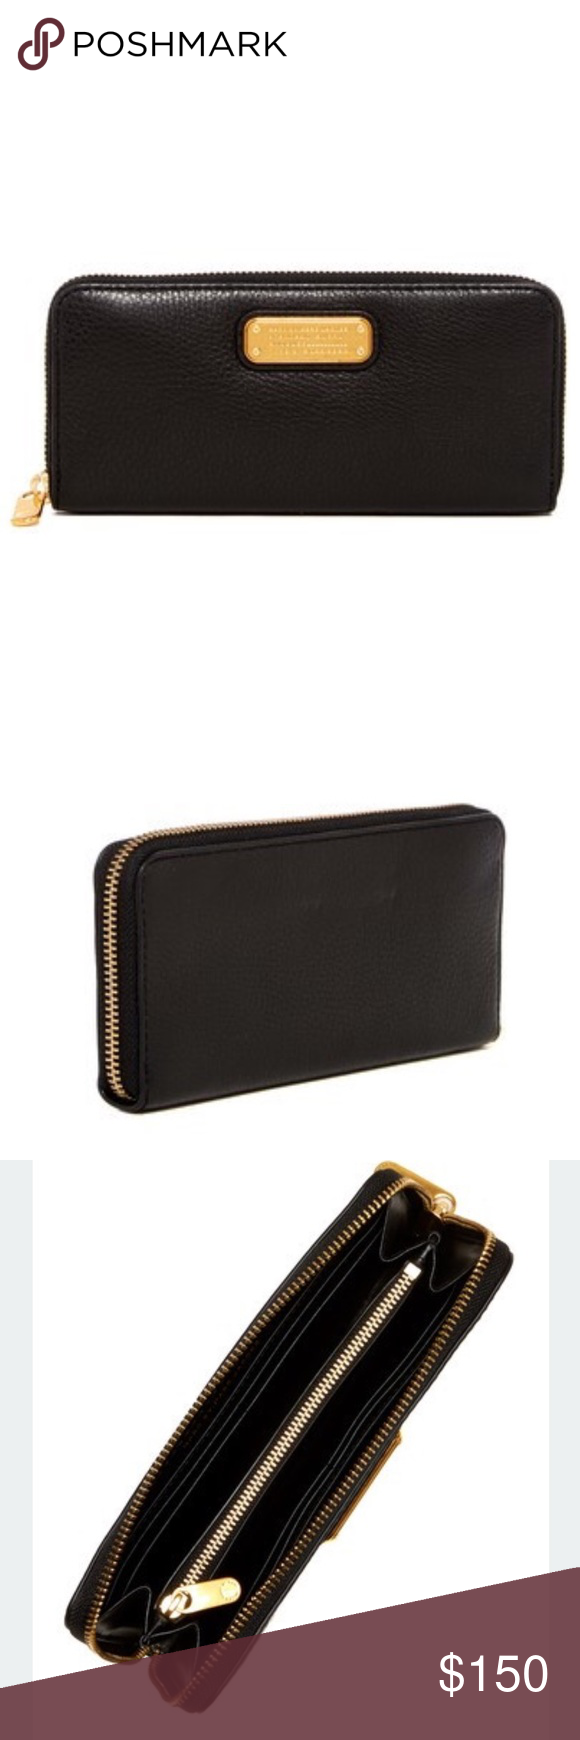 Classic Q-Slim Zip Continental Leather Wallet Marc by Marc Jacobs Classic Q-Slim Zip Continental Leather Wallet in Black. Brand new. Marc by Marc Jacobs Bags Wallets